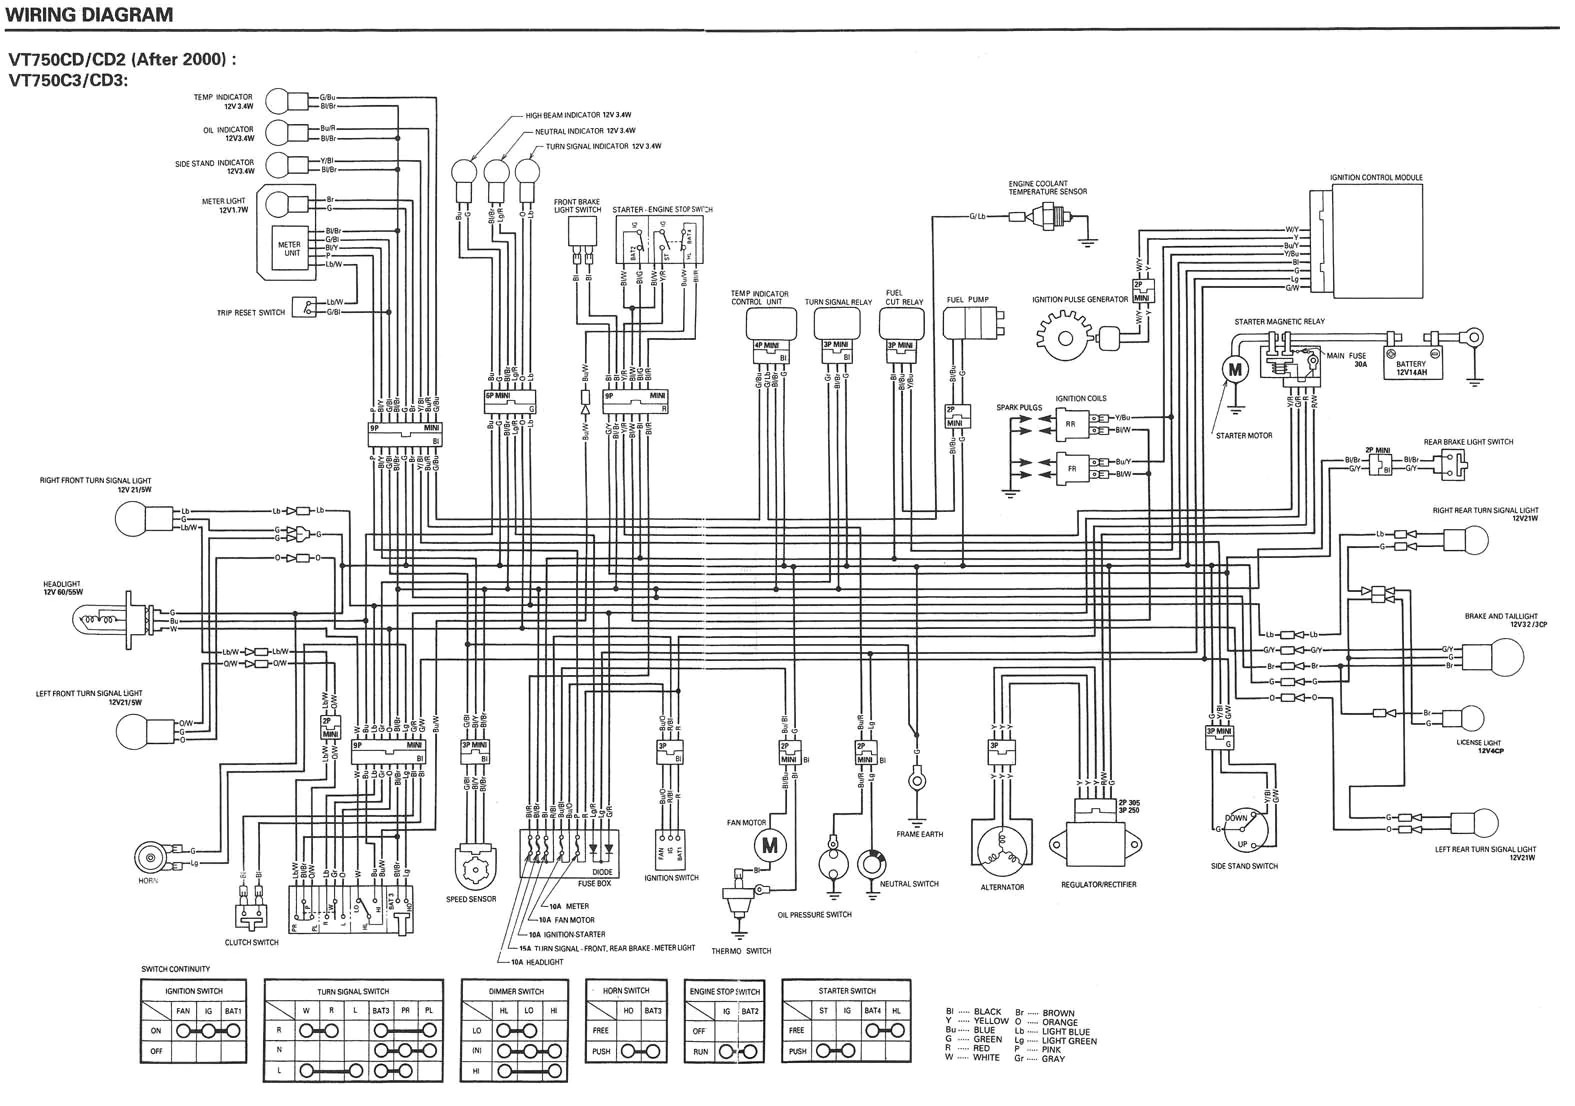 hight resolution of ace wiring diagram wiring diagram home ace frehley wiring diagram